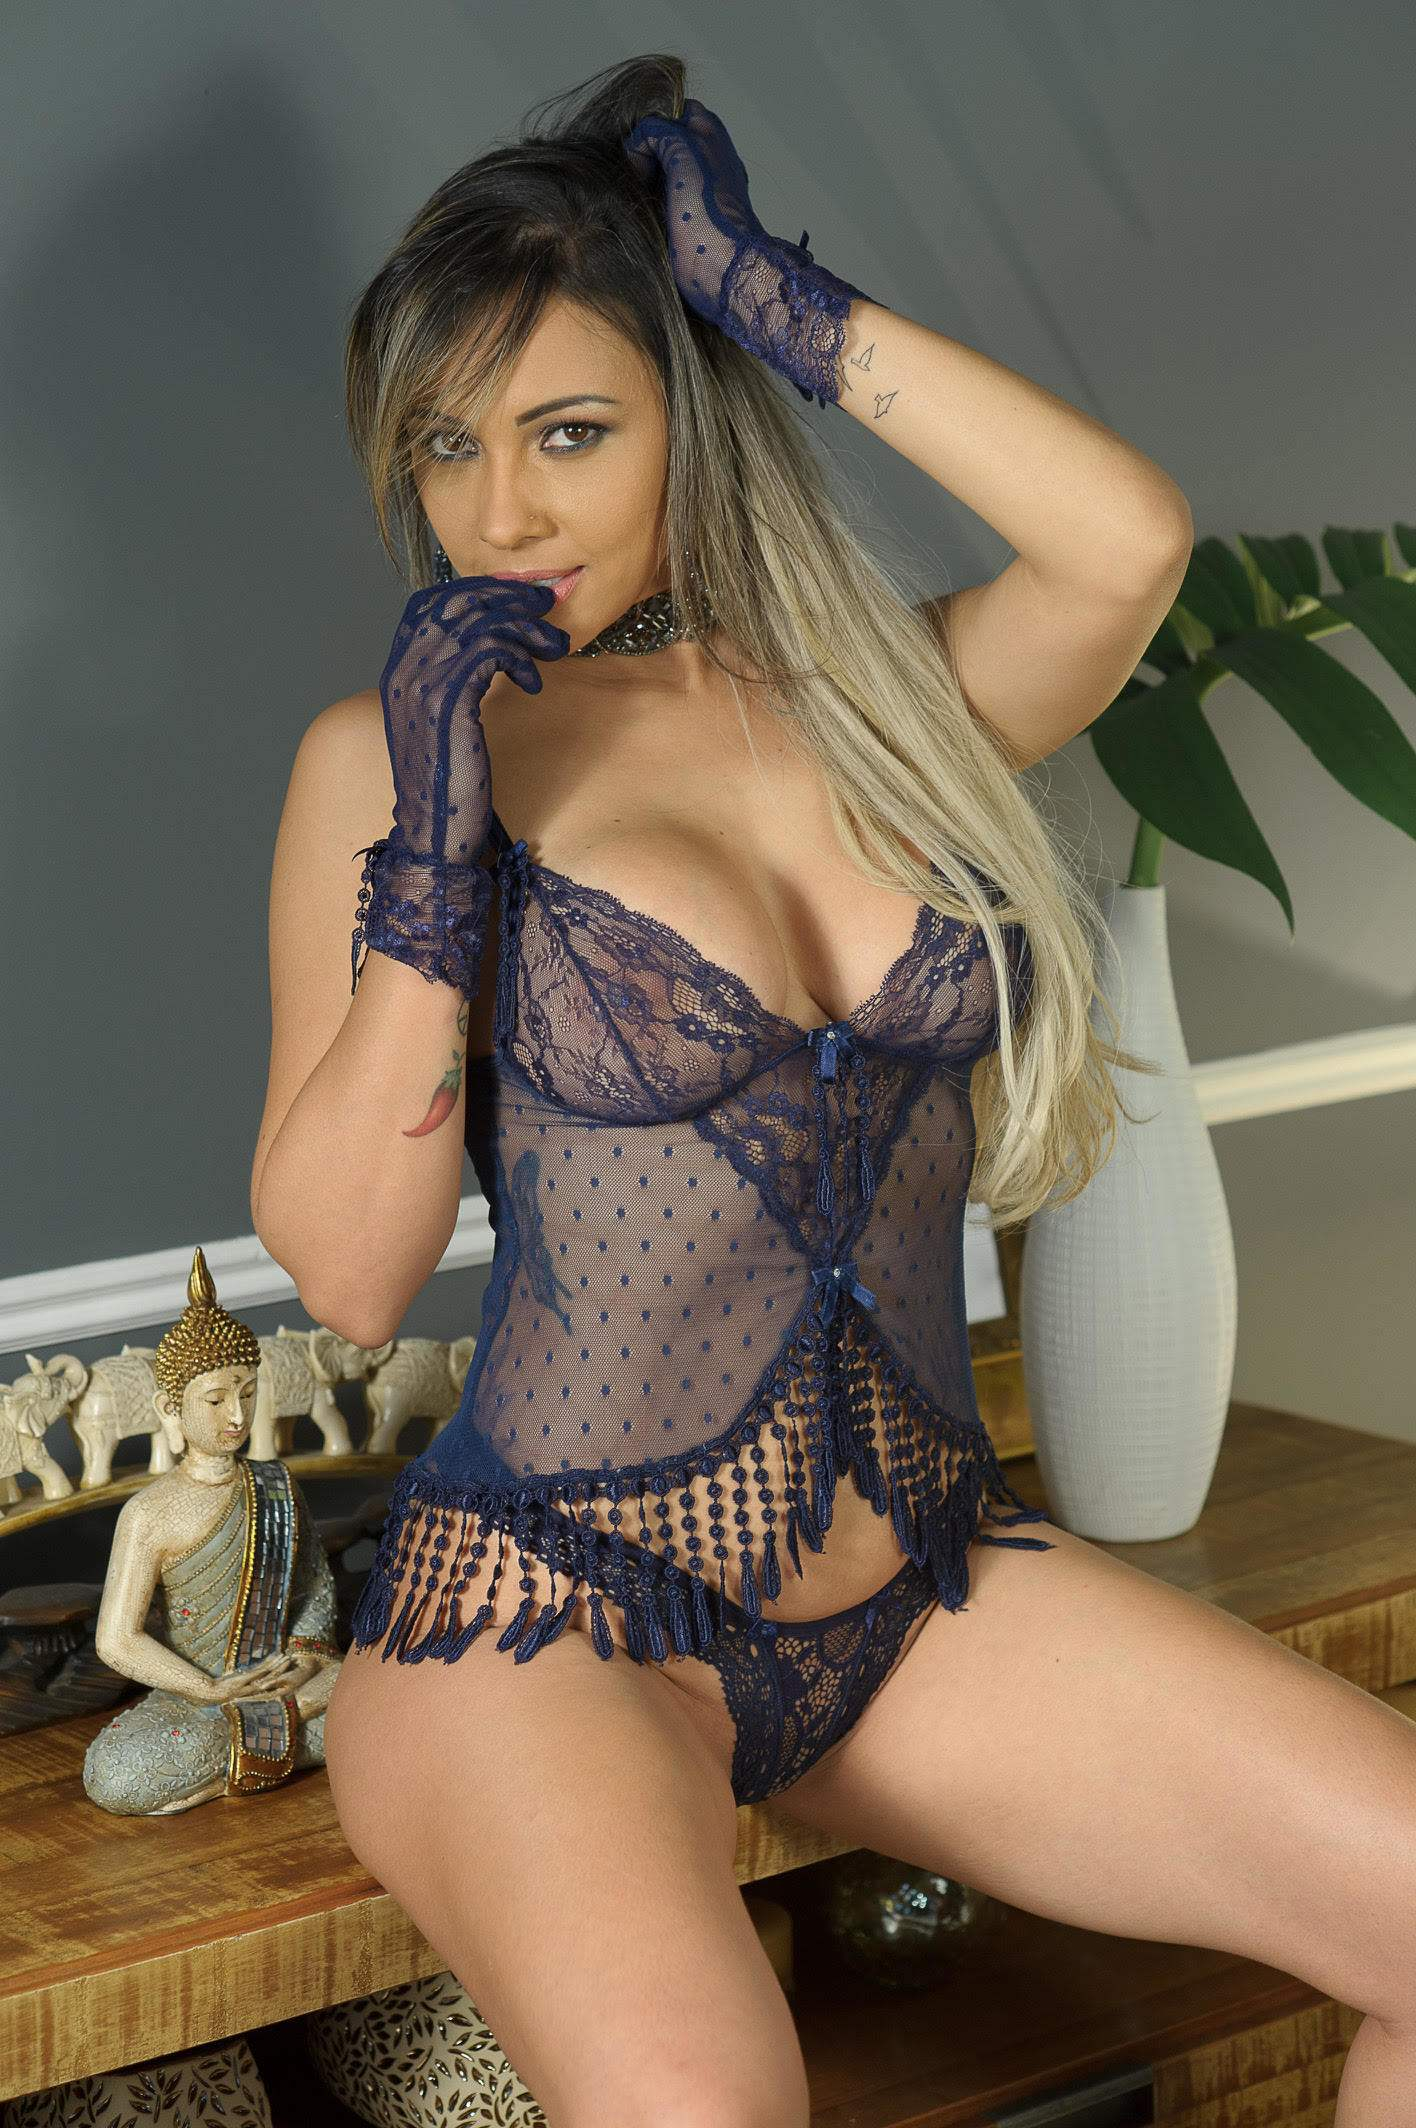 Latina escorts atlanta Escort Atlanta GA , escort girls in Atlanta GA